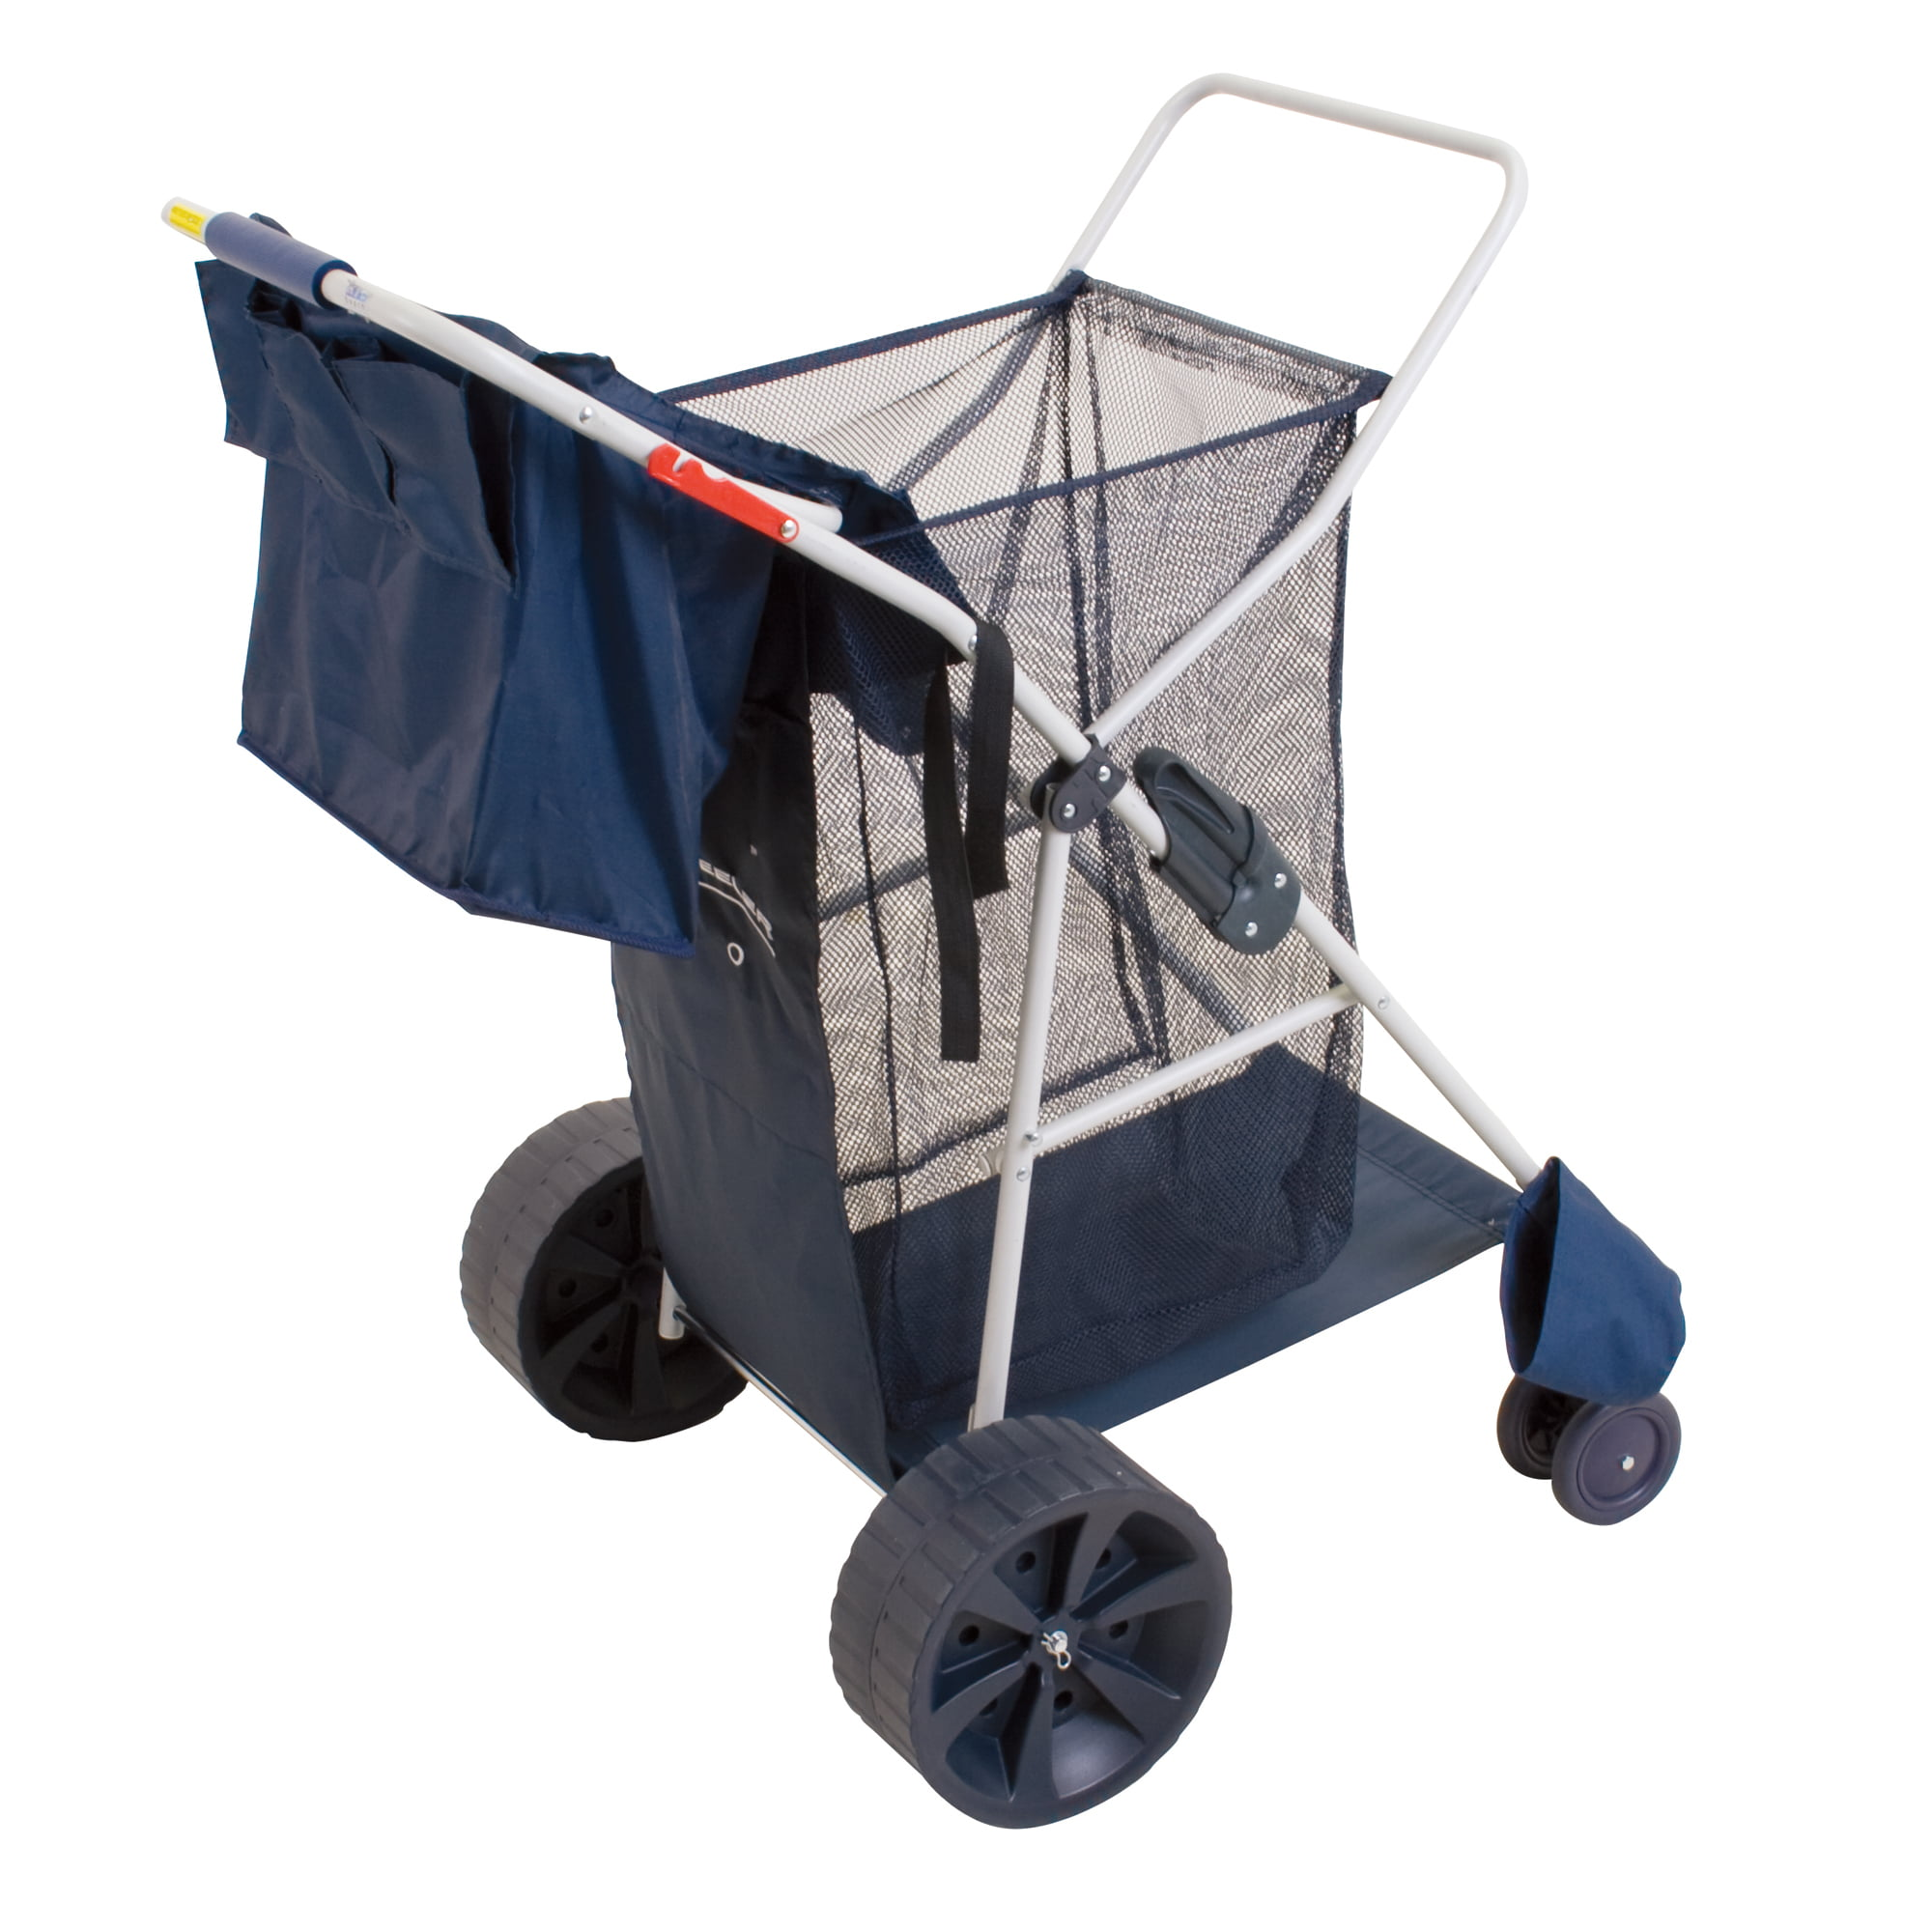 Rio Big Wheel Beach Cart Blue Walmart Inventory Checker